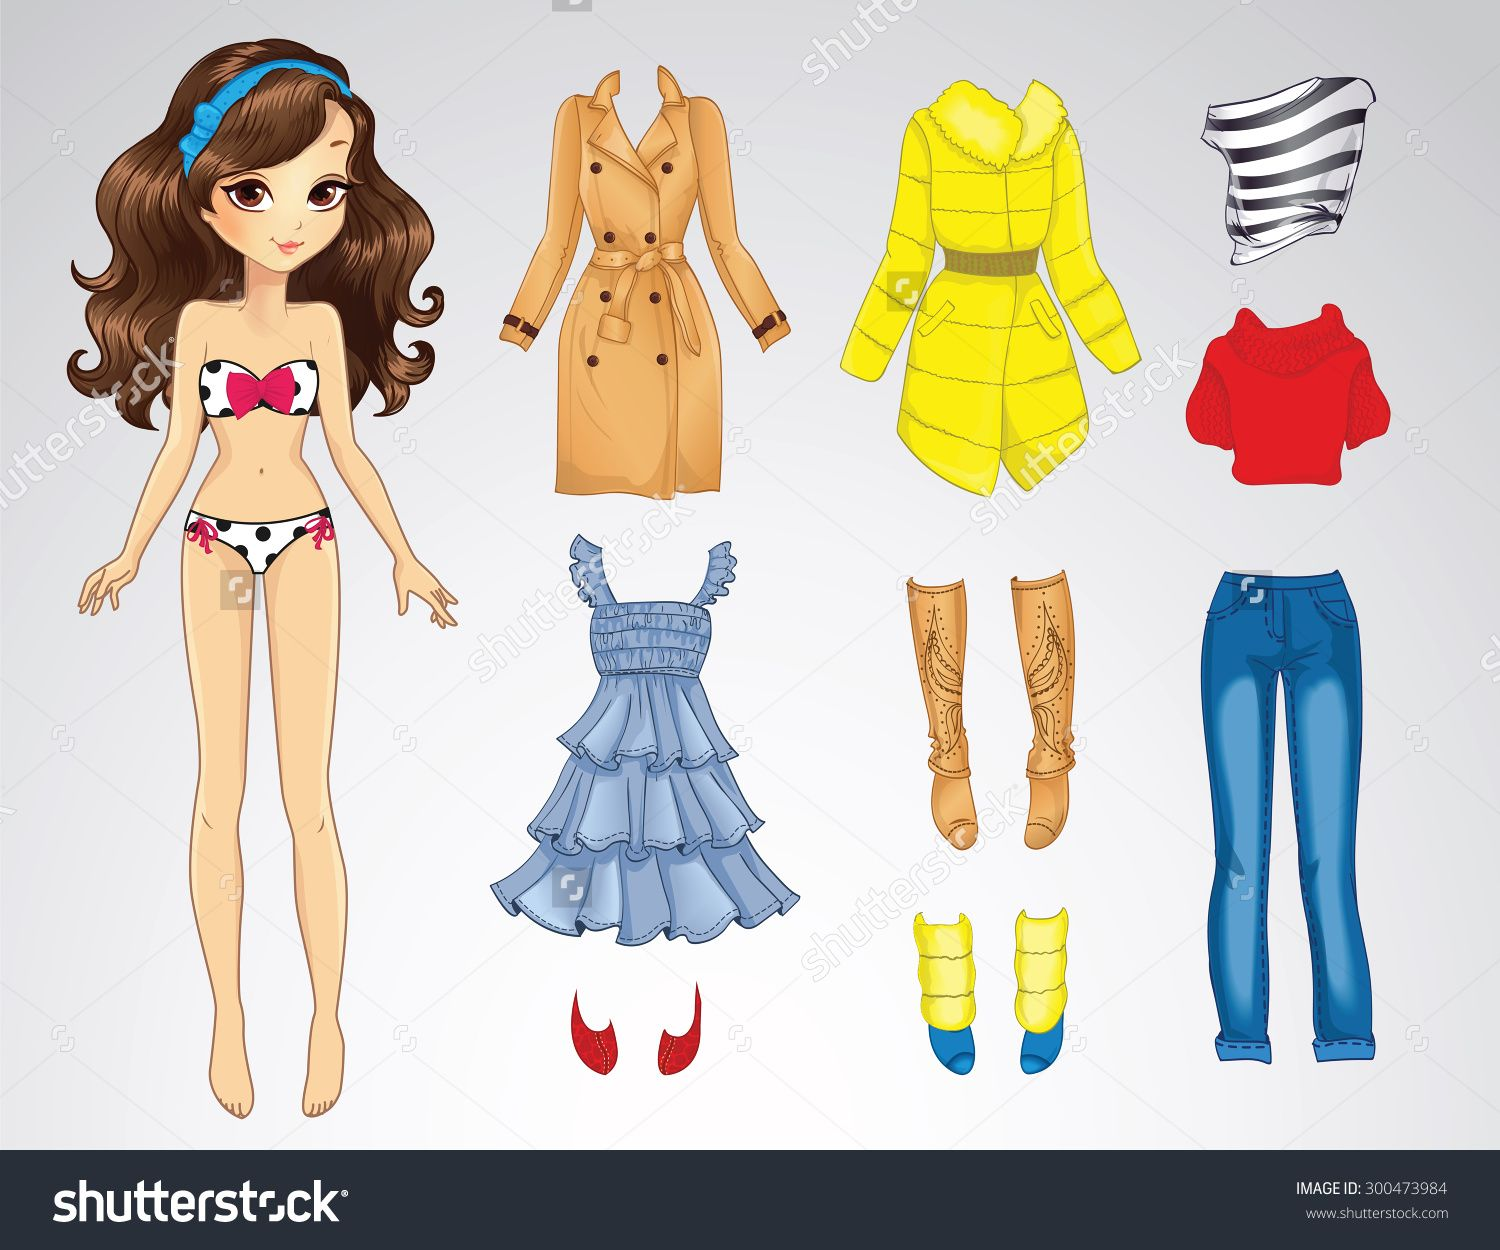 Paper Doll Clothes Clipart.